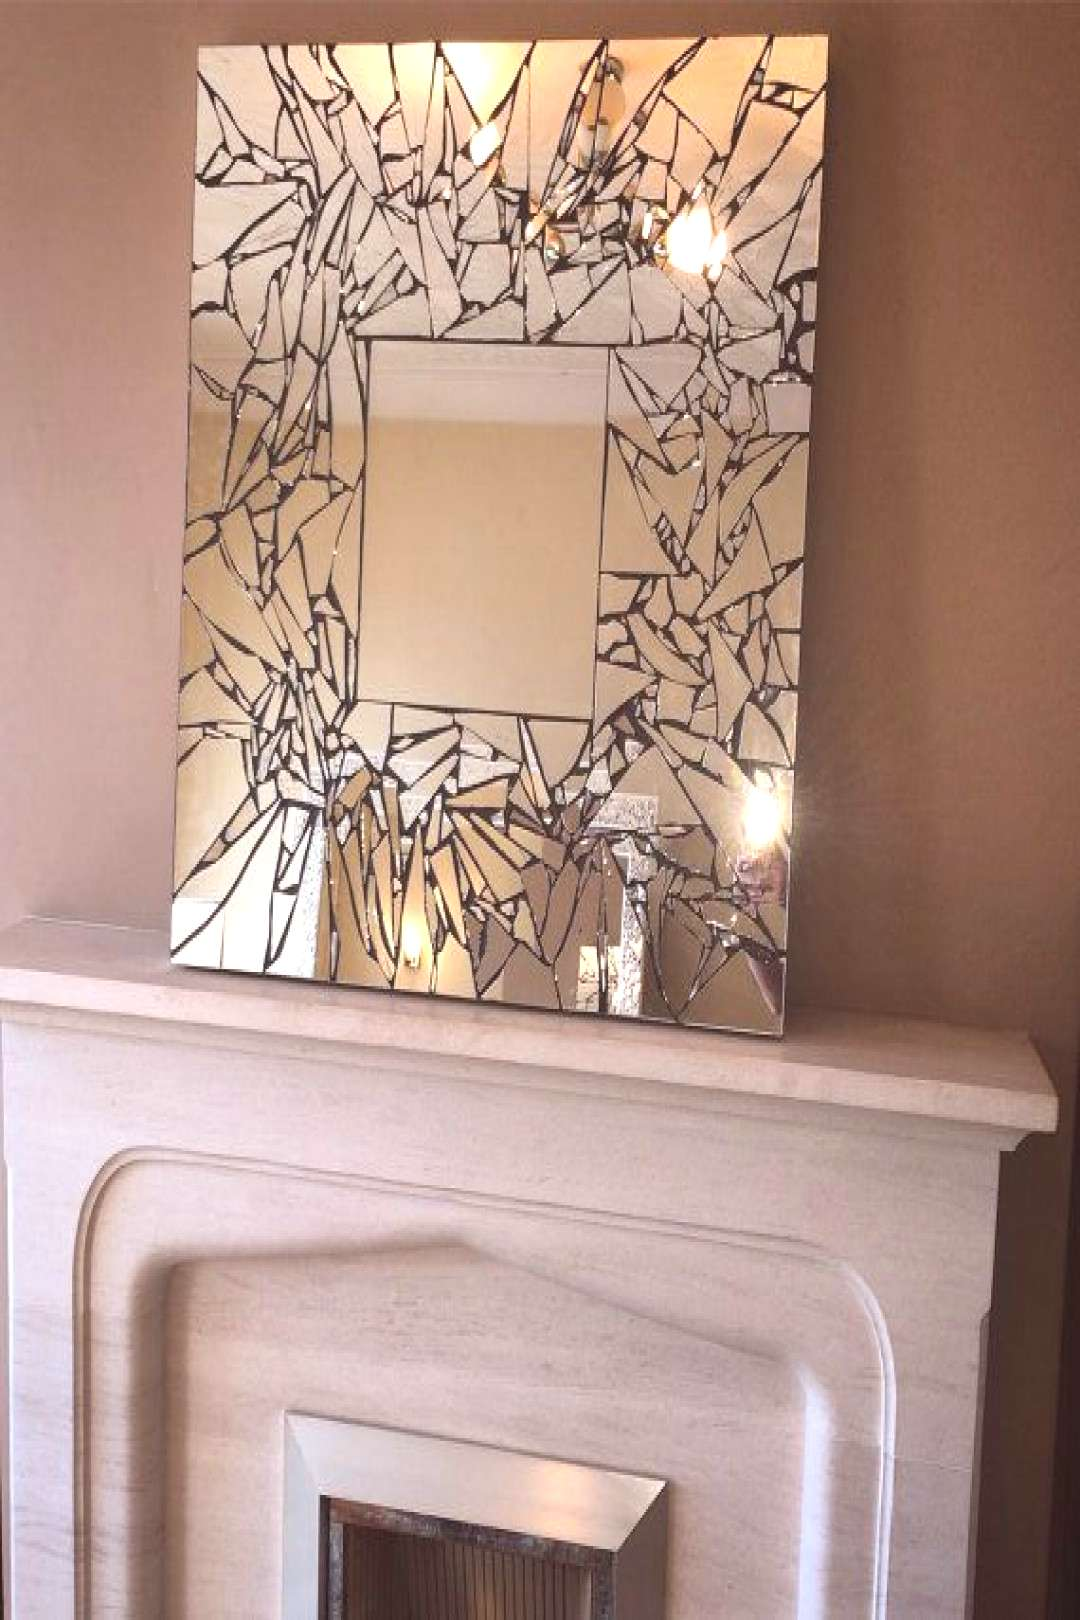 Handmade mosaic mirror- interesting use of mirror and black grout. Need to use an adhesive that doe